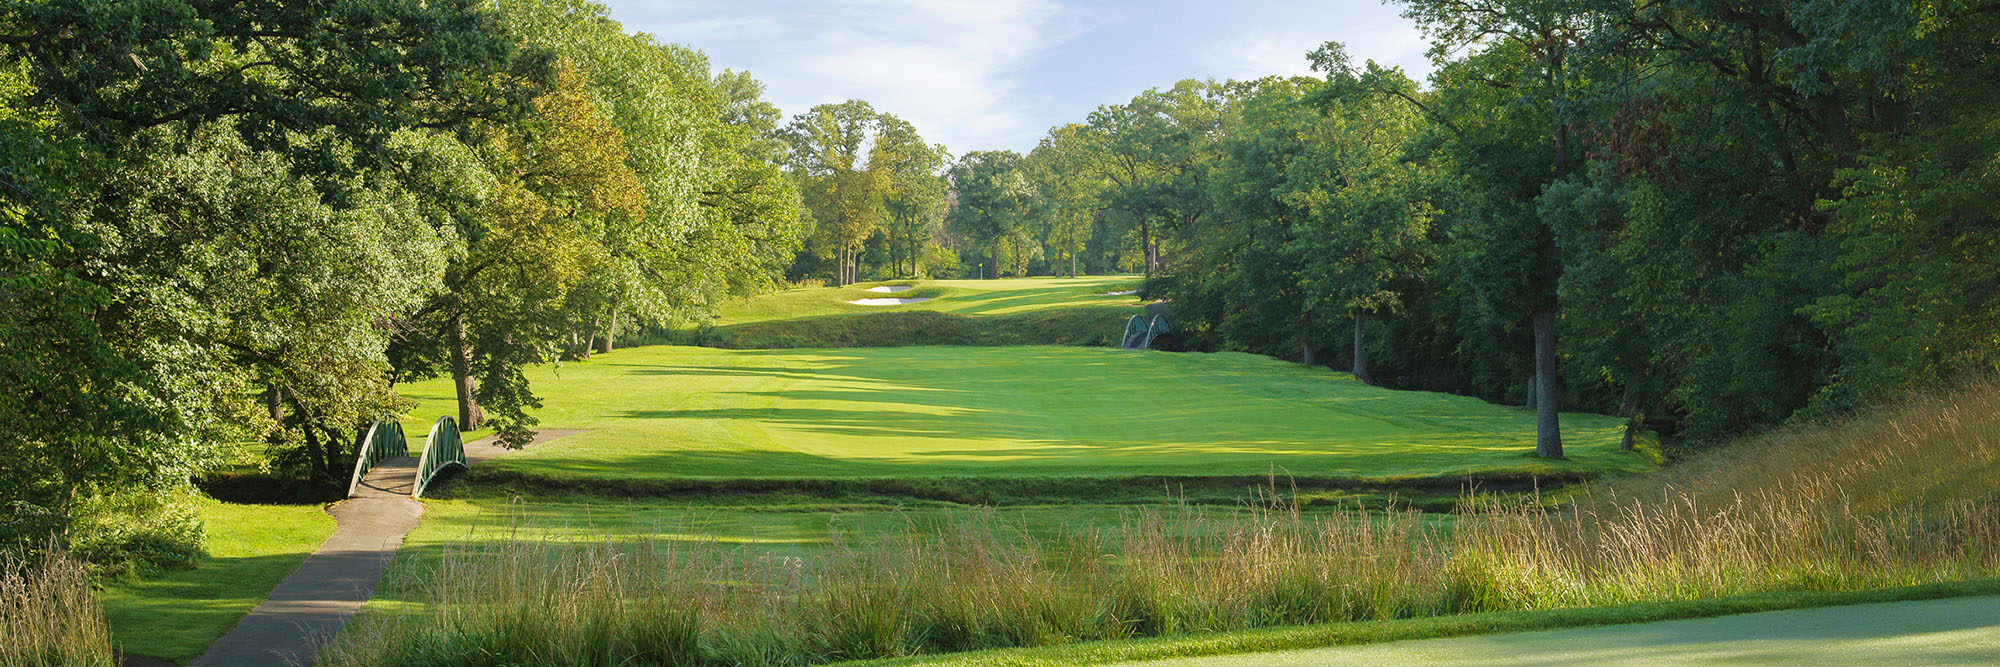 Golf Course Image - Olympia Fields North No. 14